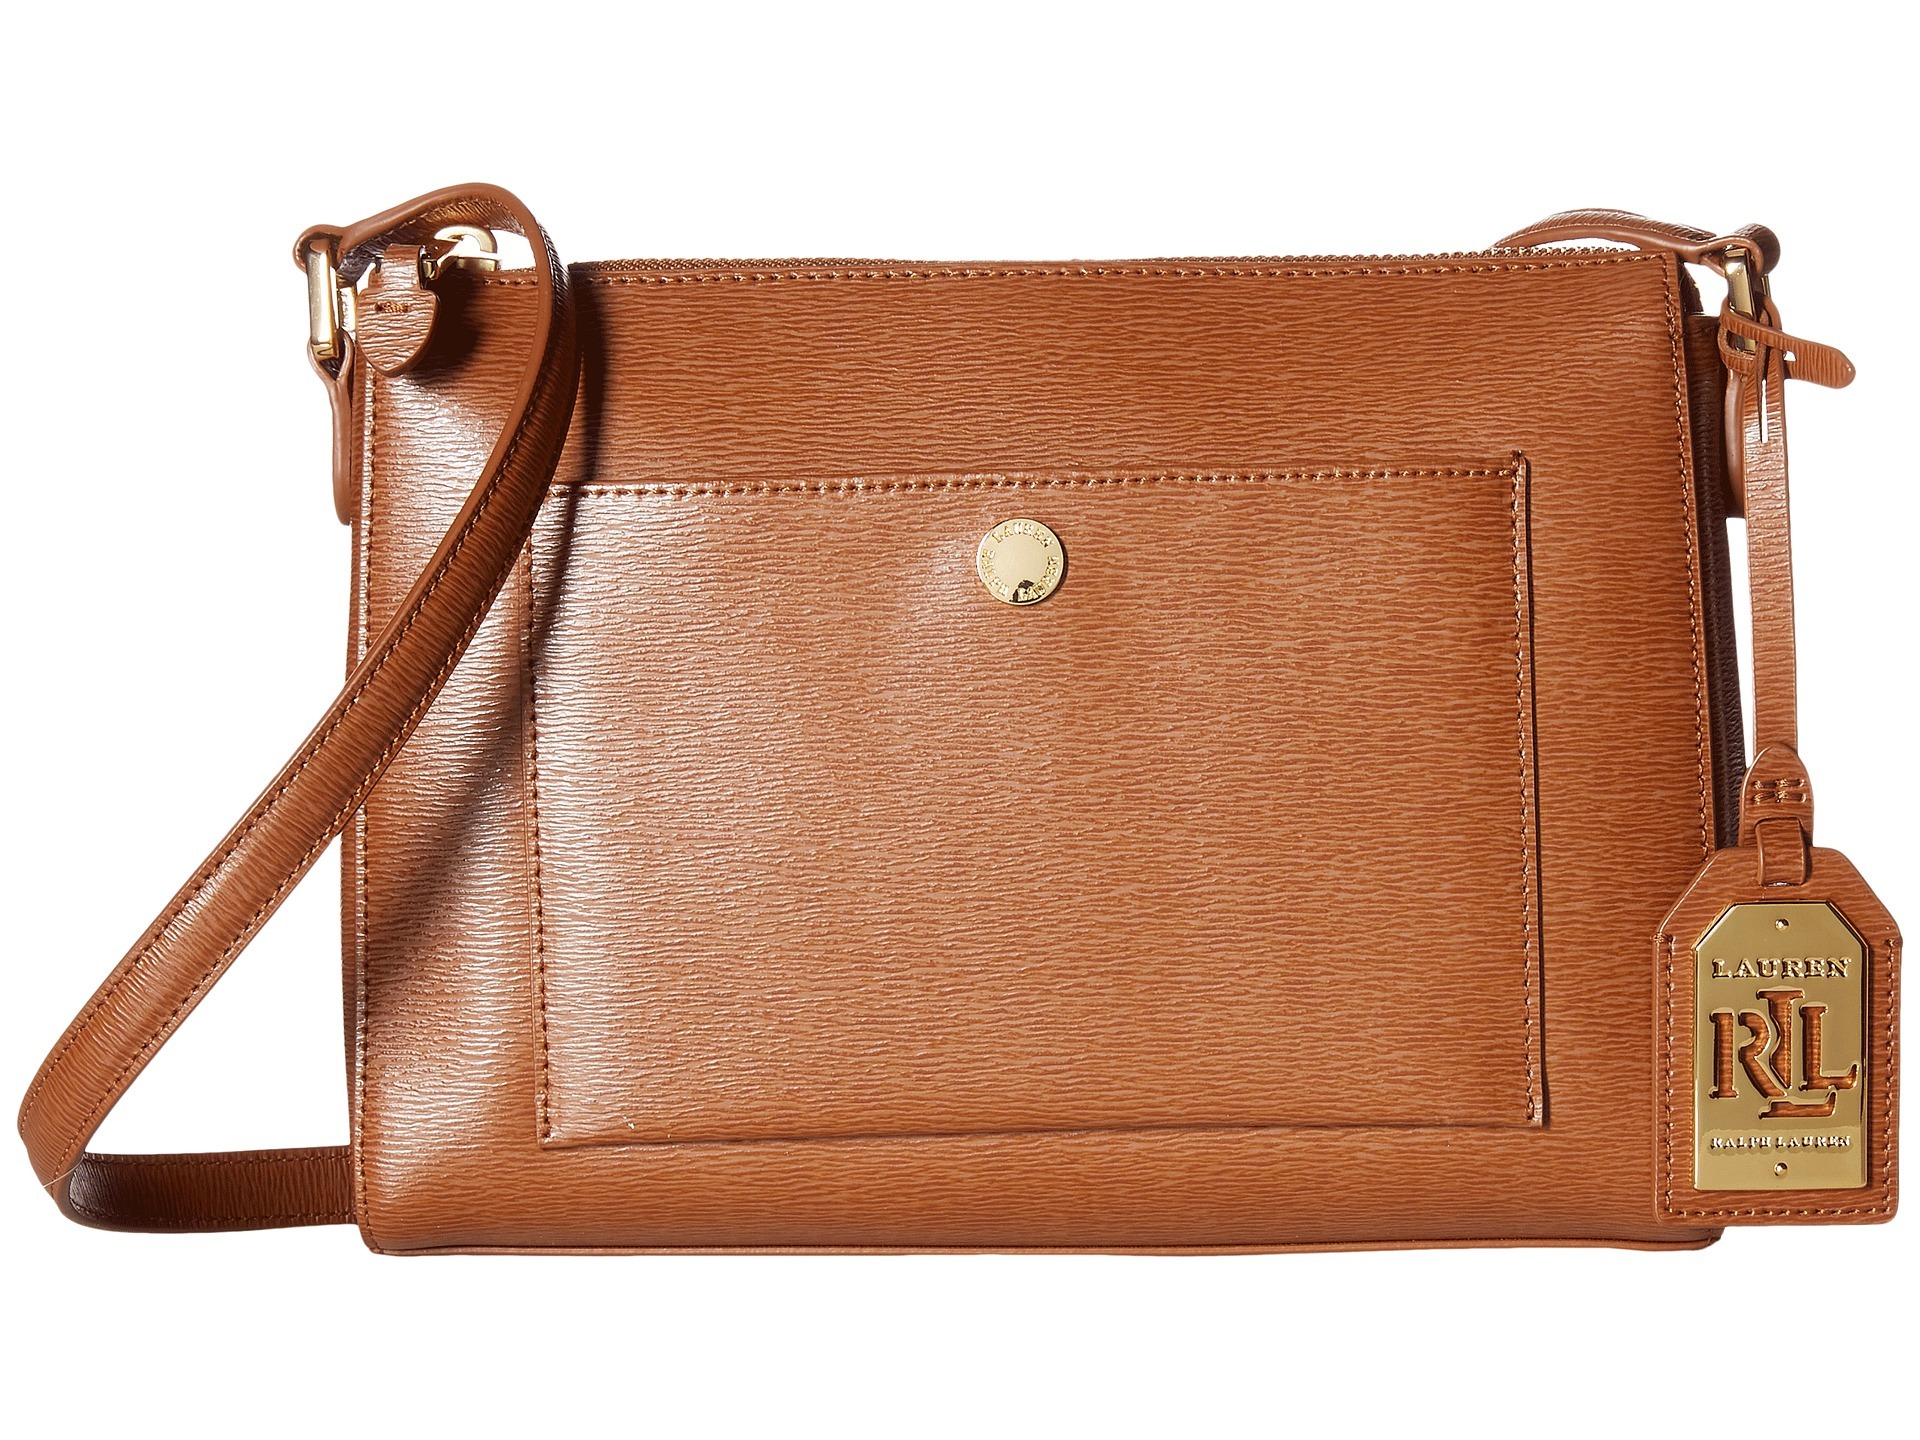 4366b992c97 Lyst - Lauren by Ralph Lauren Newbury Pocket Crossbody